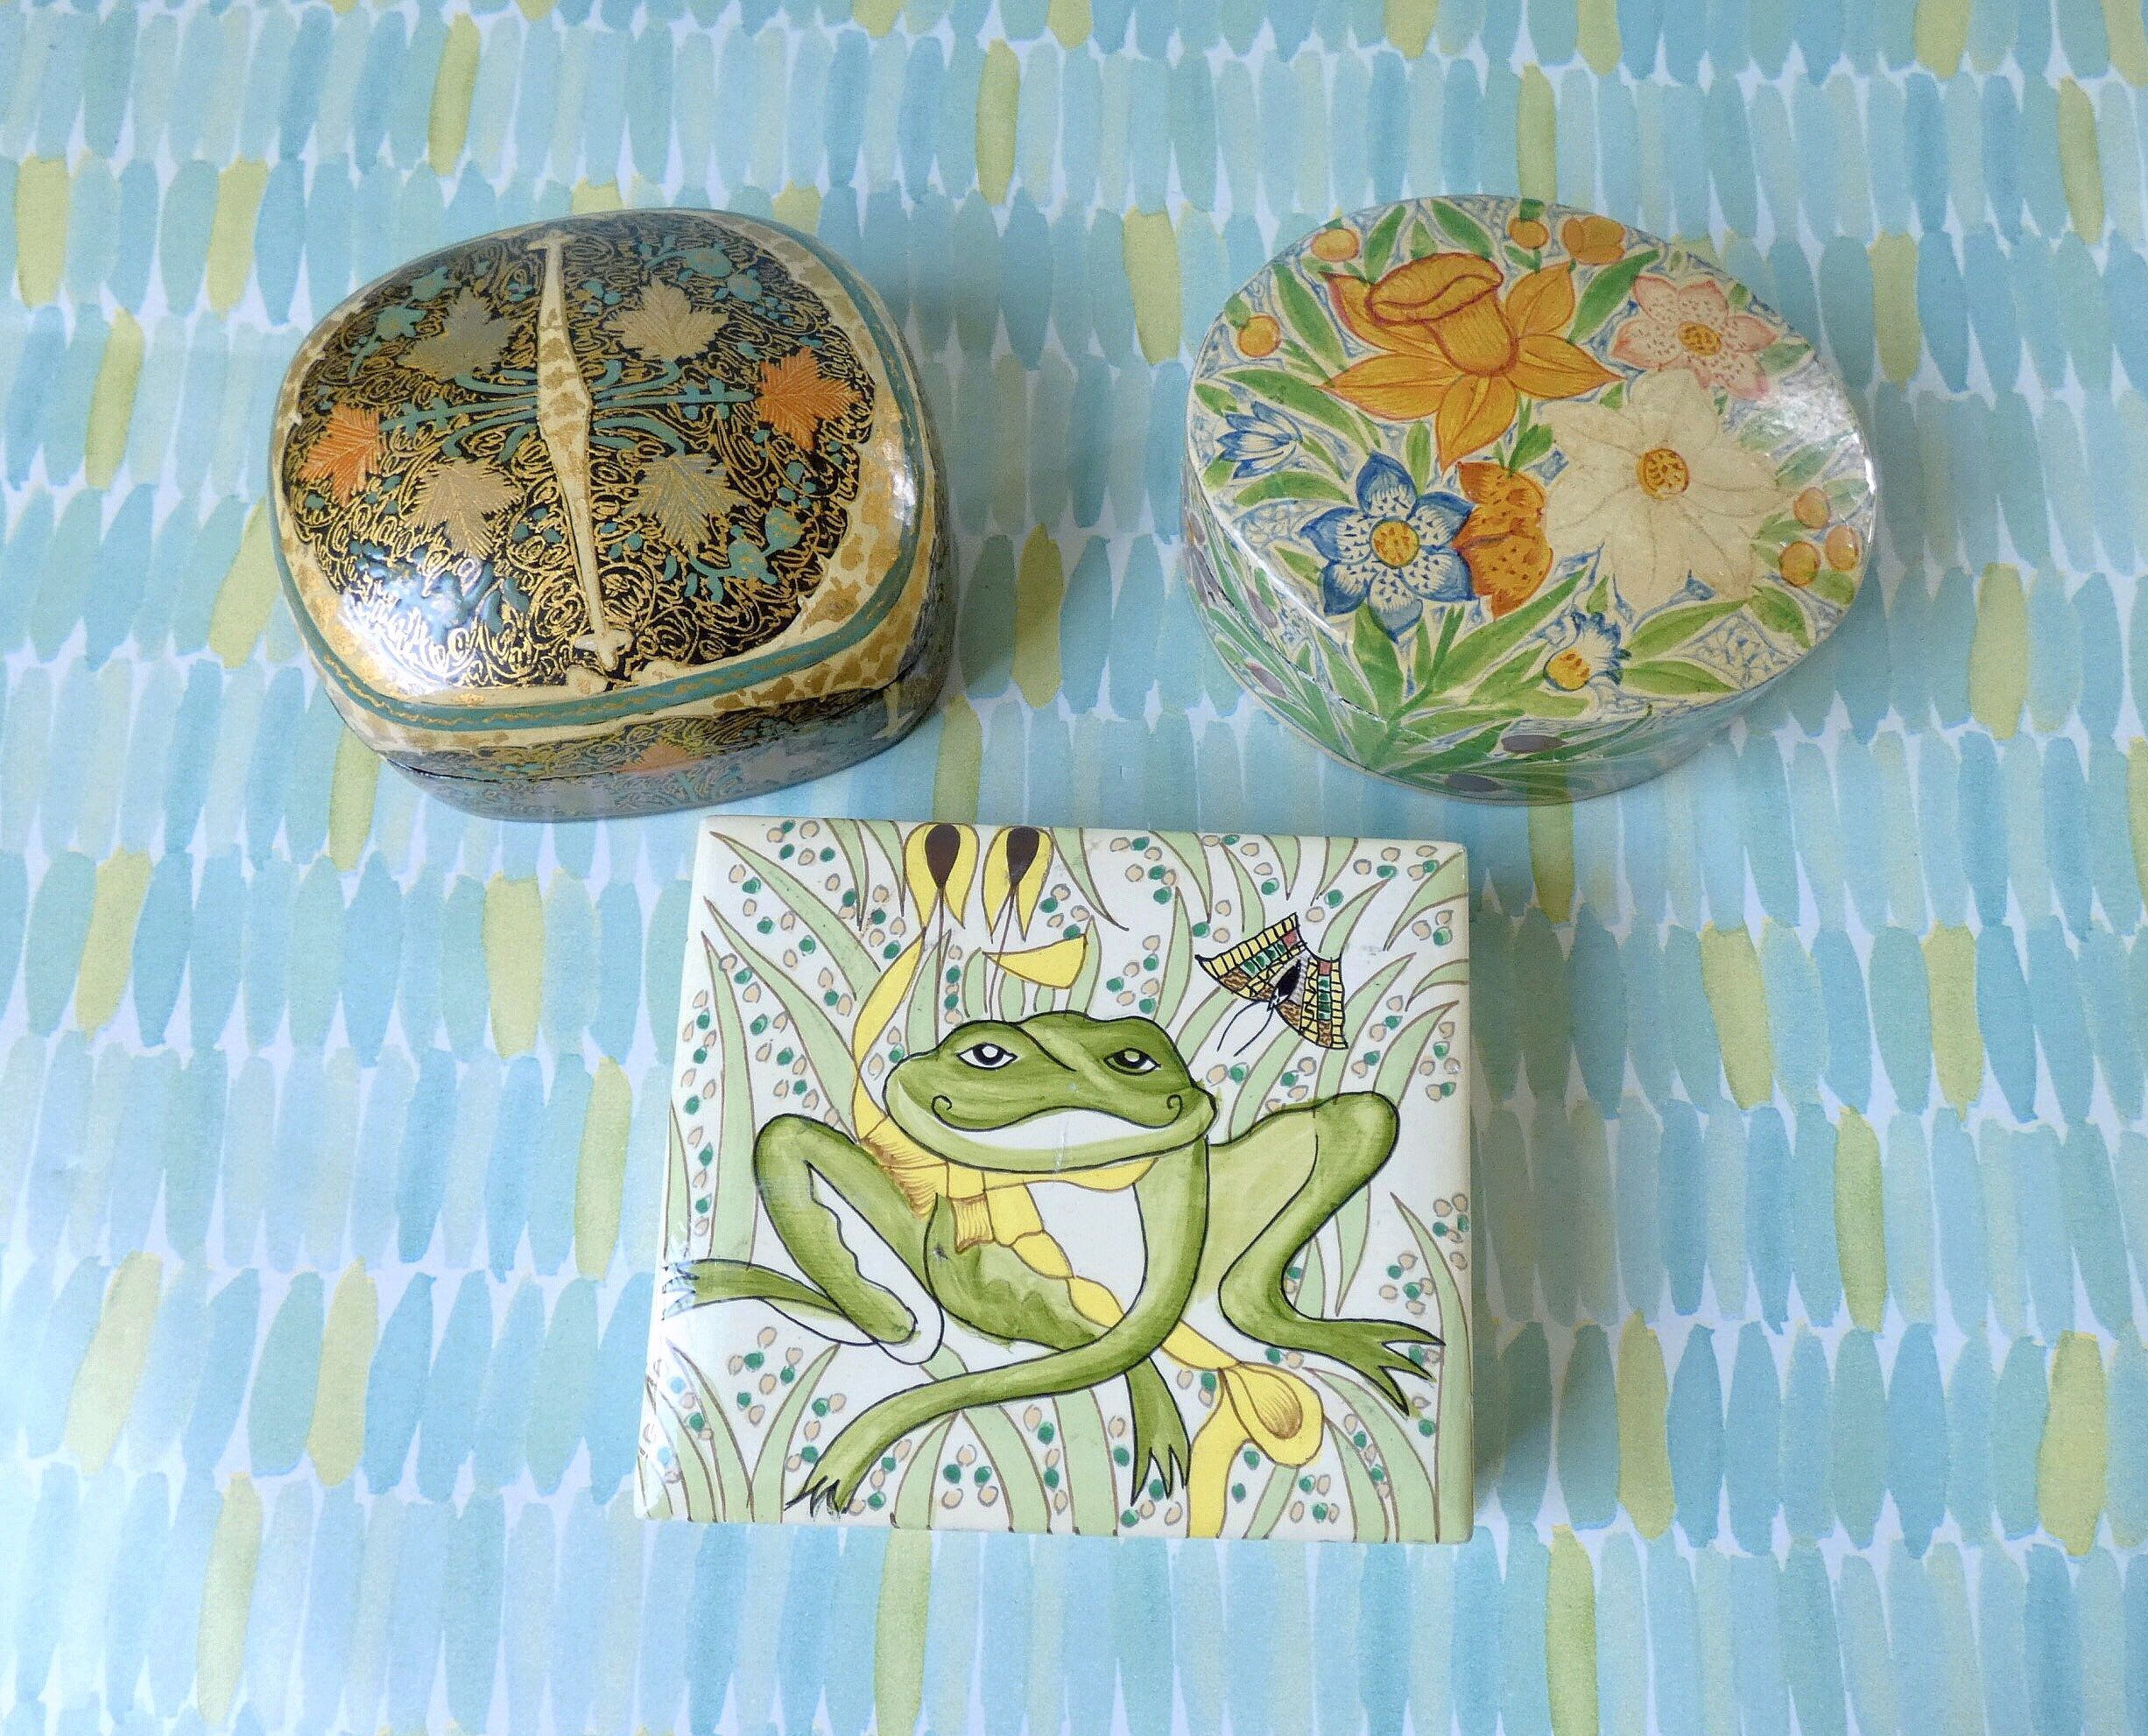 Kashmir Trinket Box Lot, Tole Painted Wood Boxes, Handmade Lacquerware #tolepainting